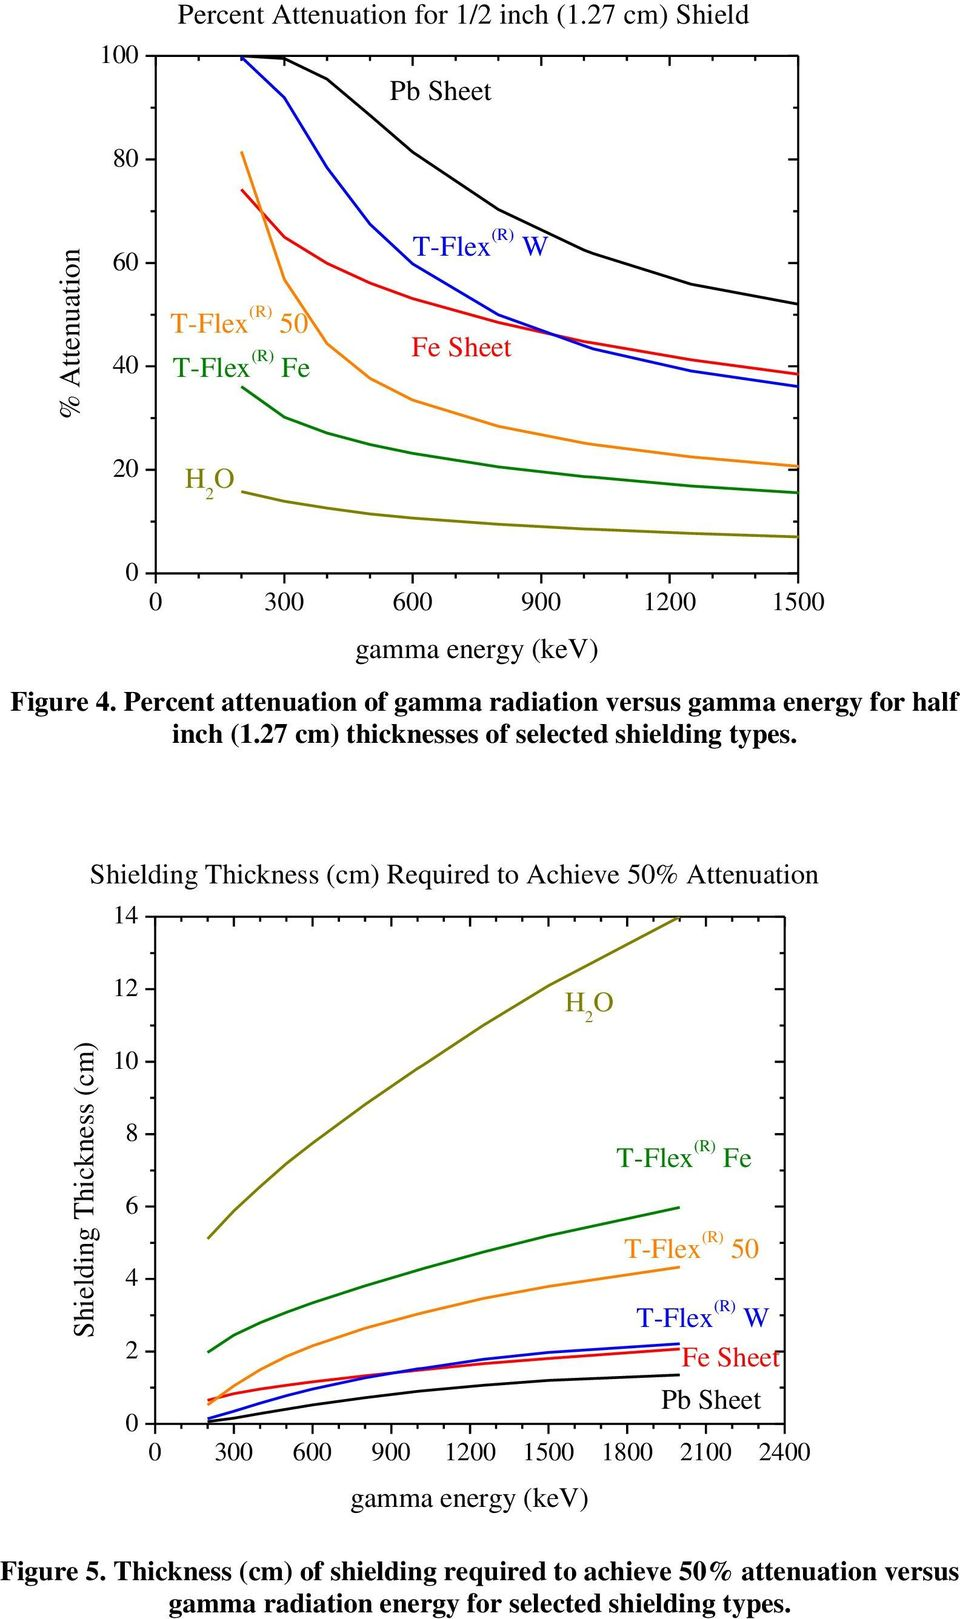 Percent attenuation of gamma radiation versus gamma energy for half inch (.27 cm) thicknesses of selected shielding types.